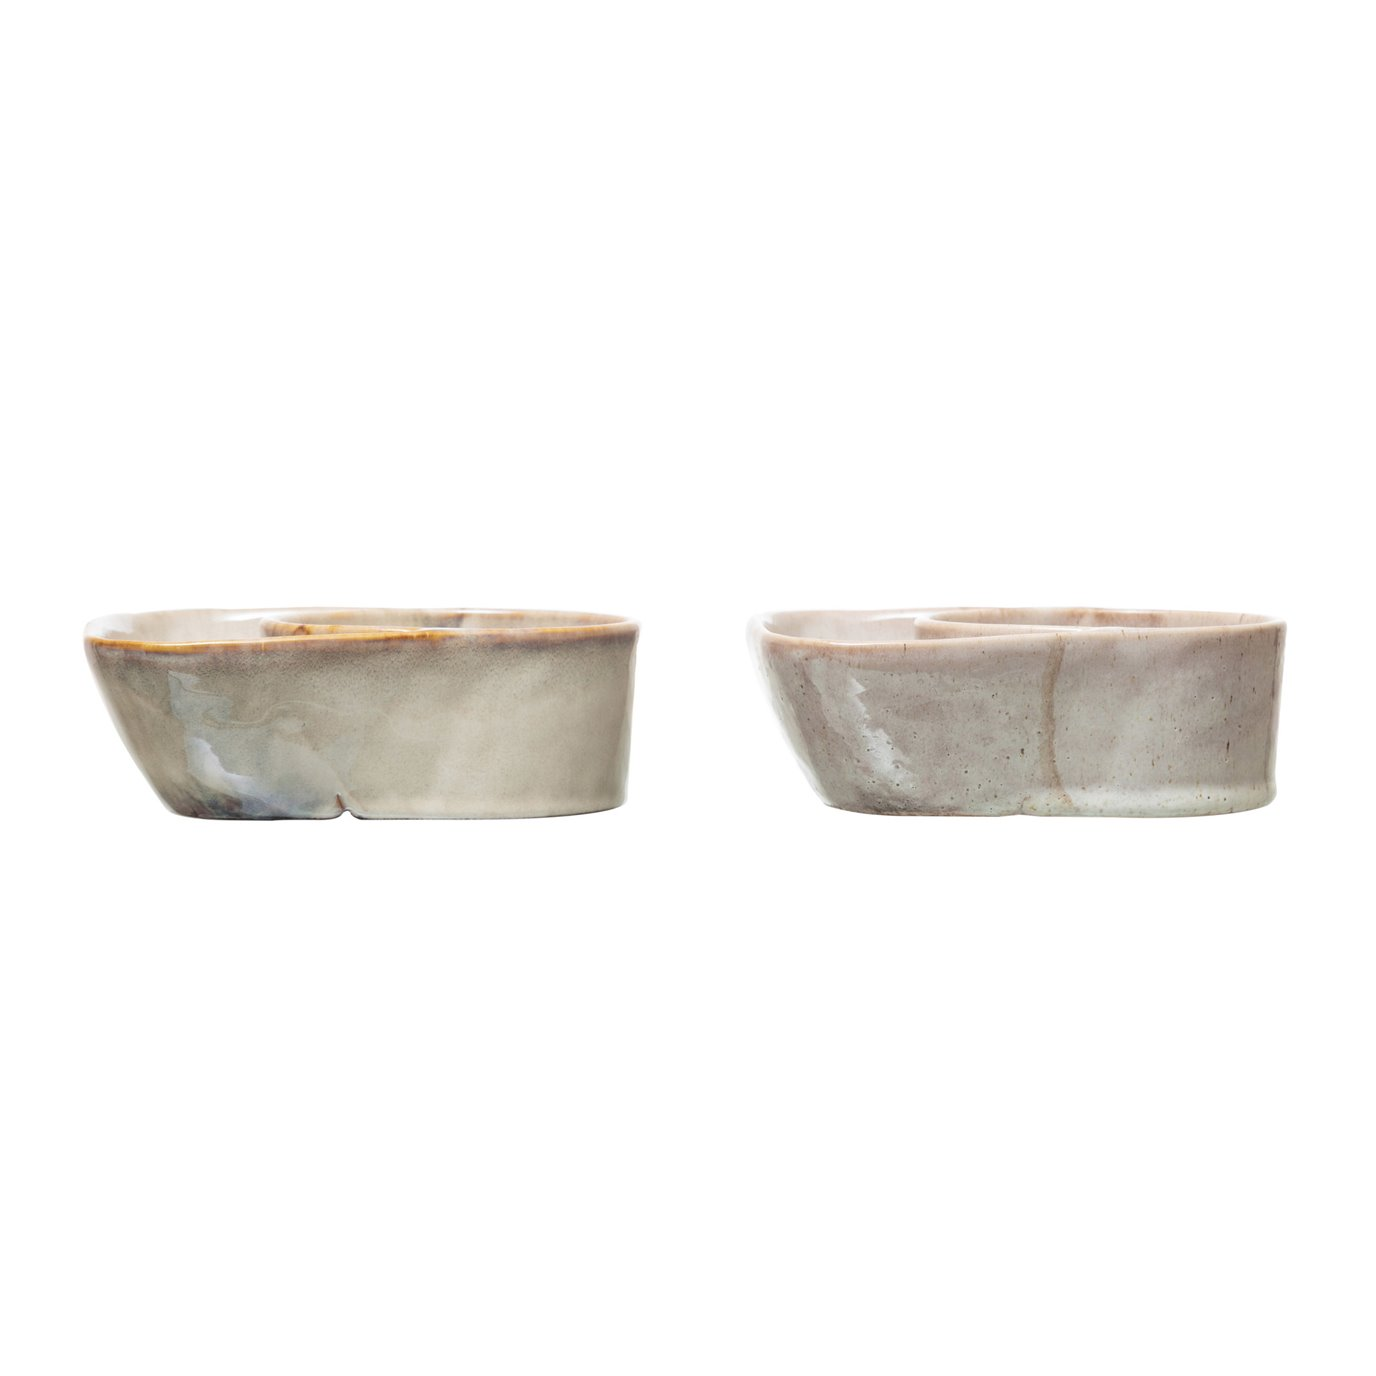 Stoneware Cracker & Soup Bowl, Reactive Glaze, 2 Colors (Each One Will Vary)